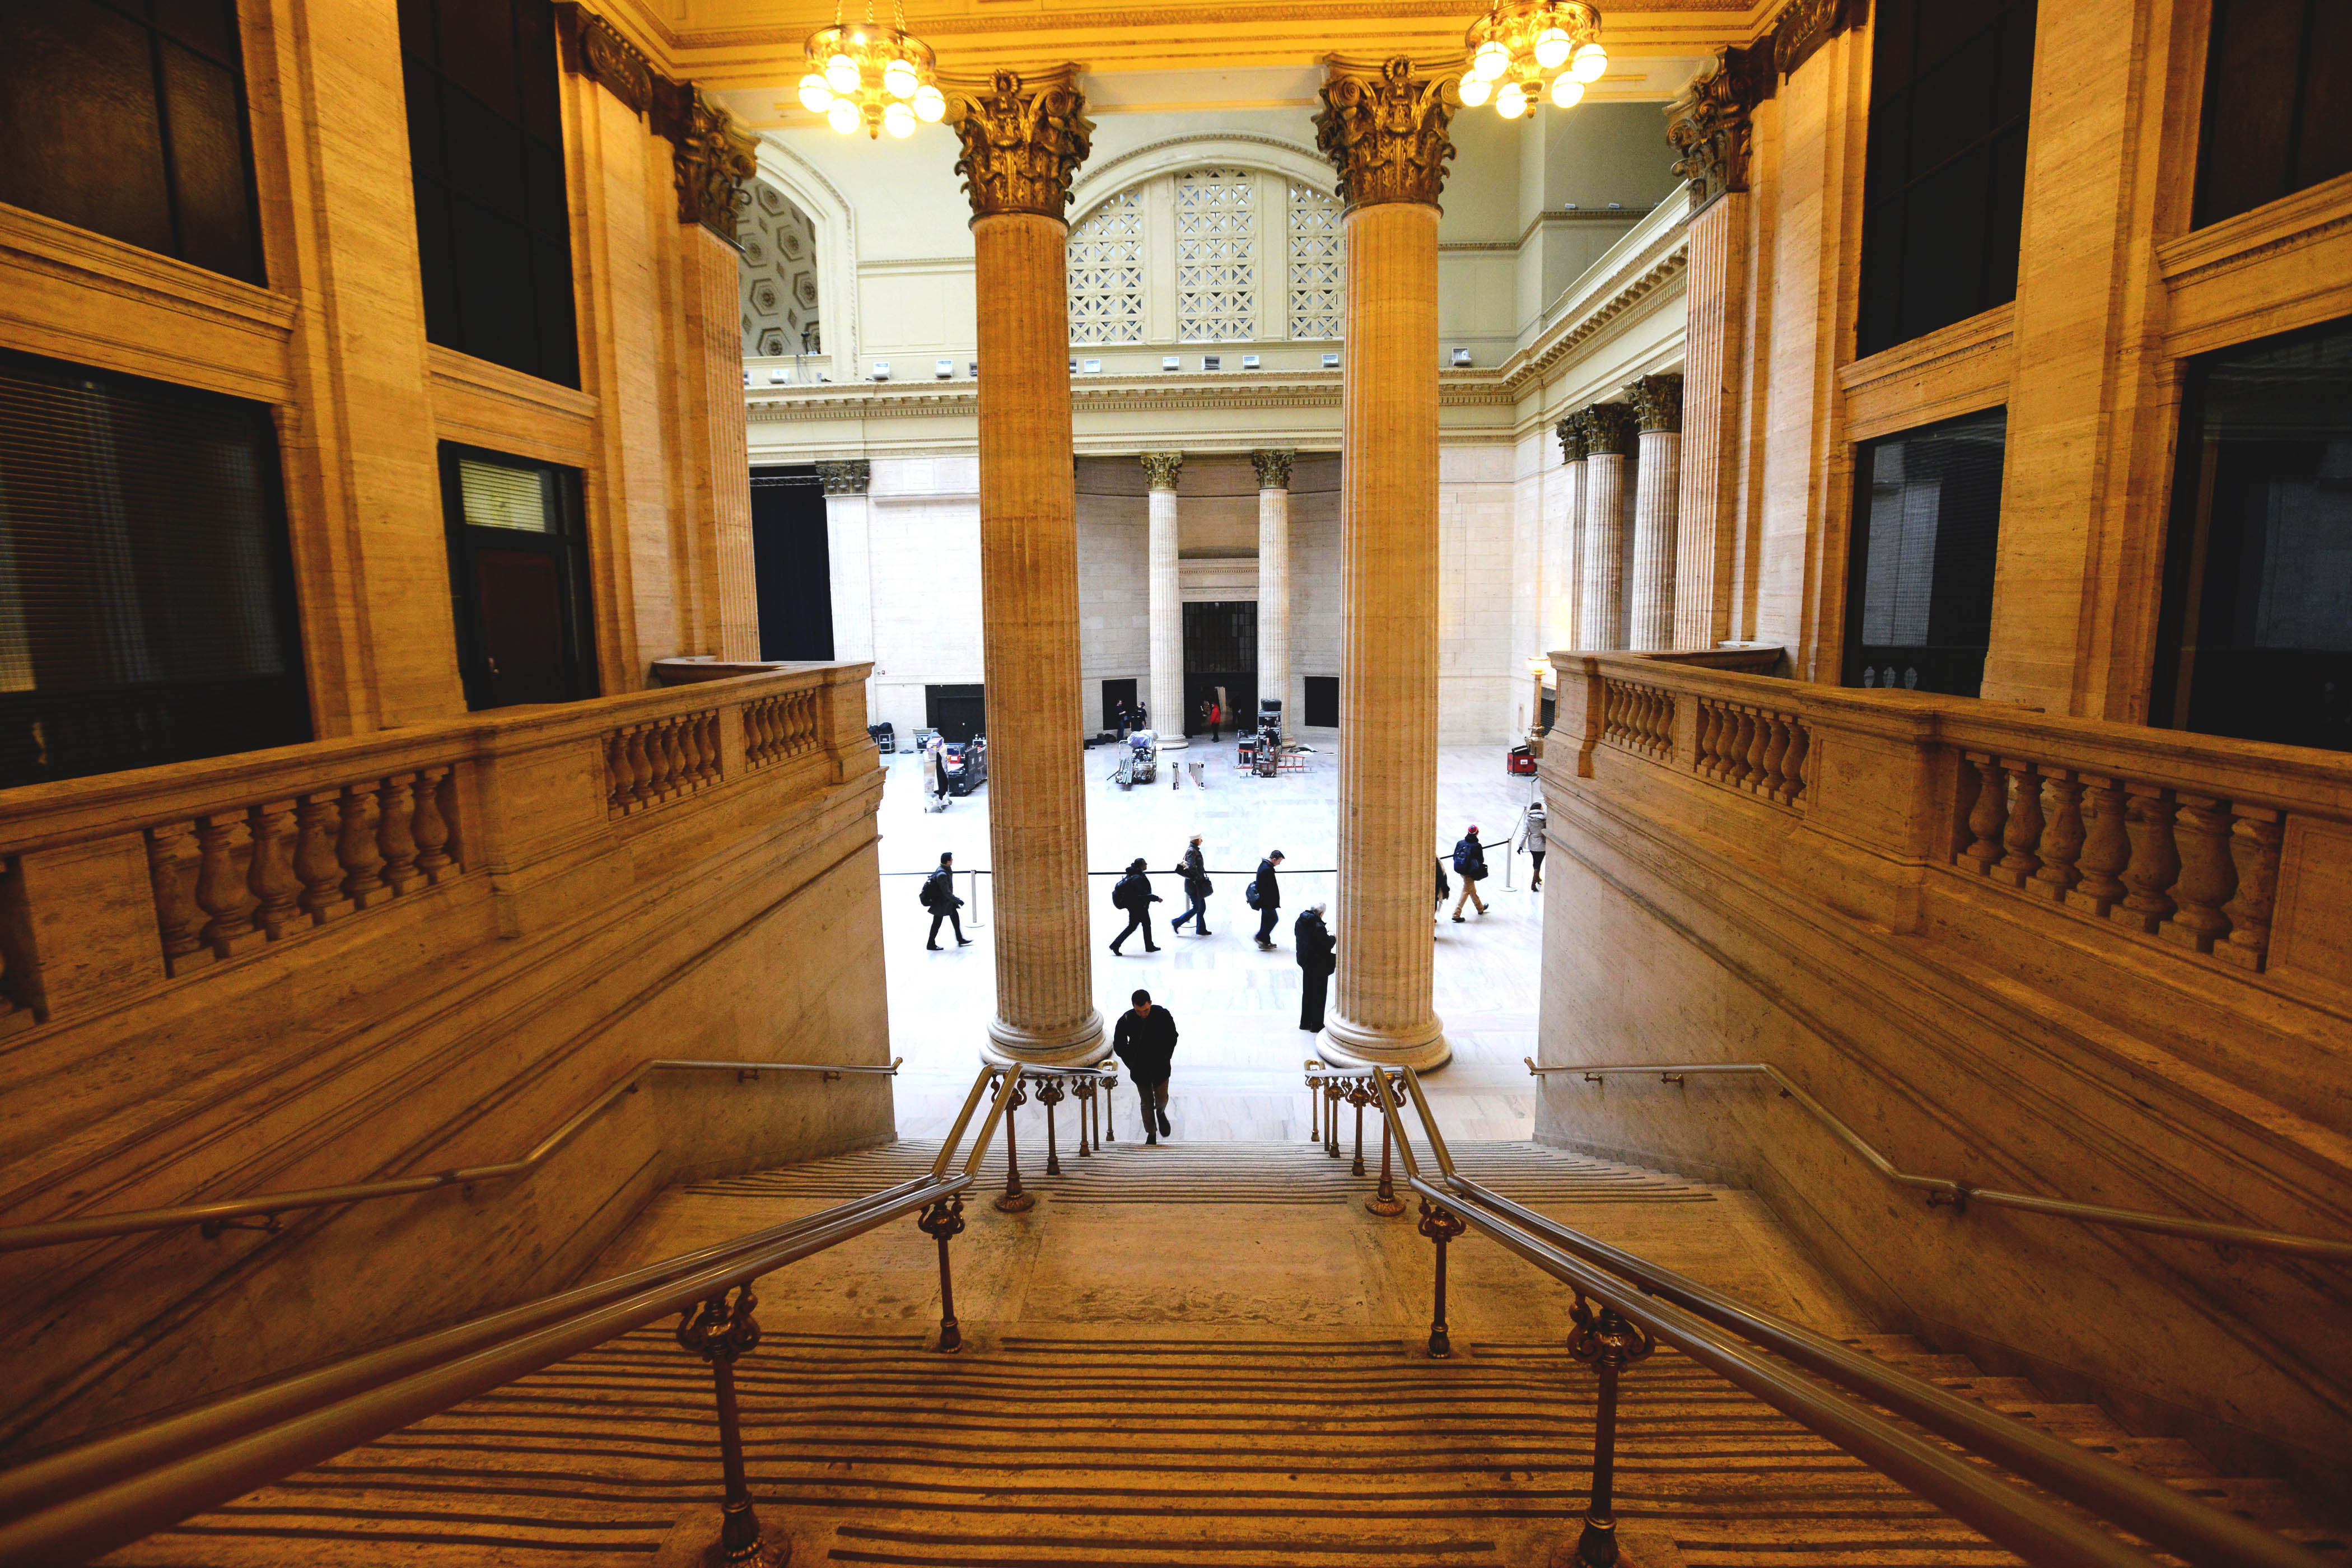 View inside Union Station Chicago of the tall ceilings above a staircase in the main hall with tall columns